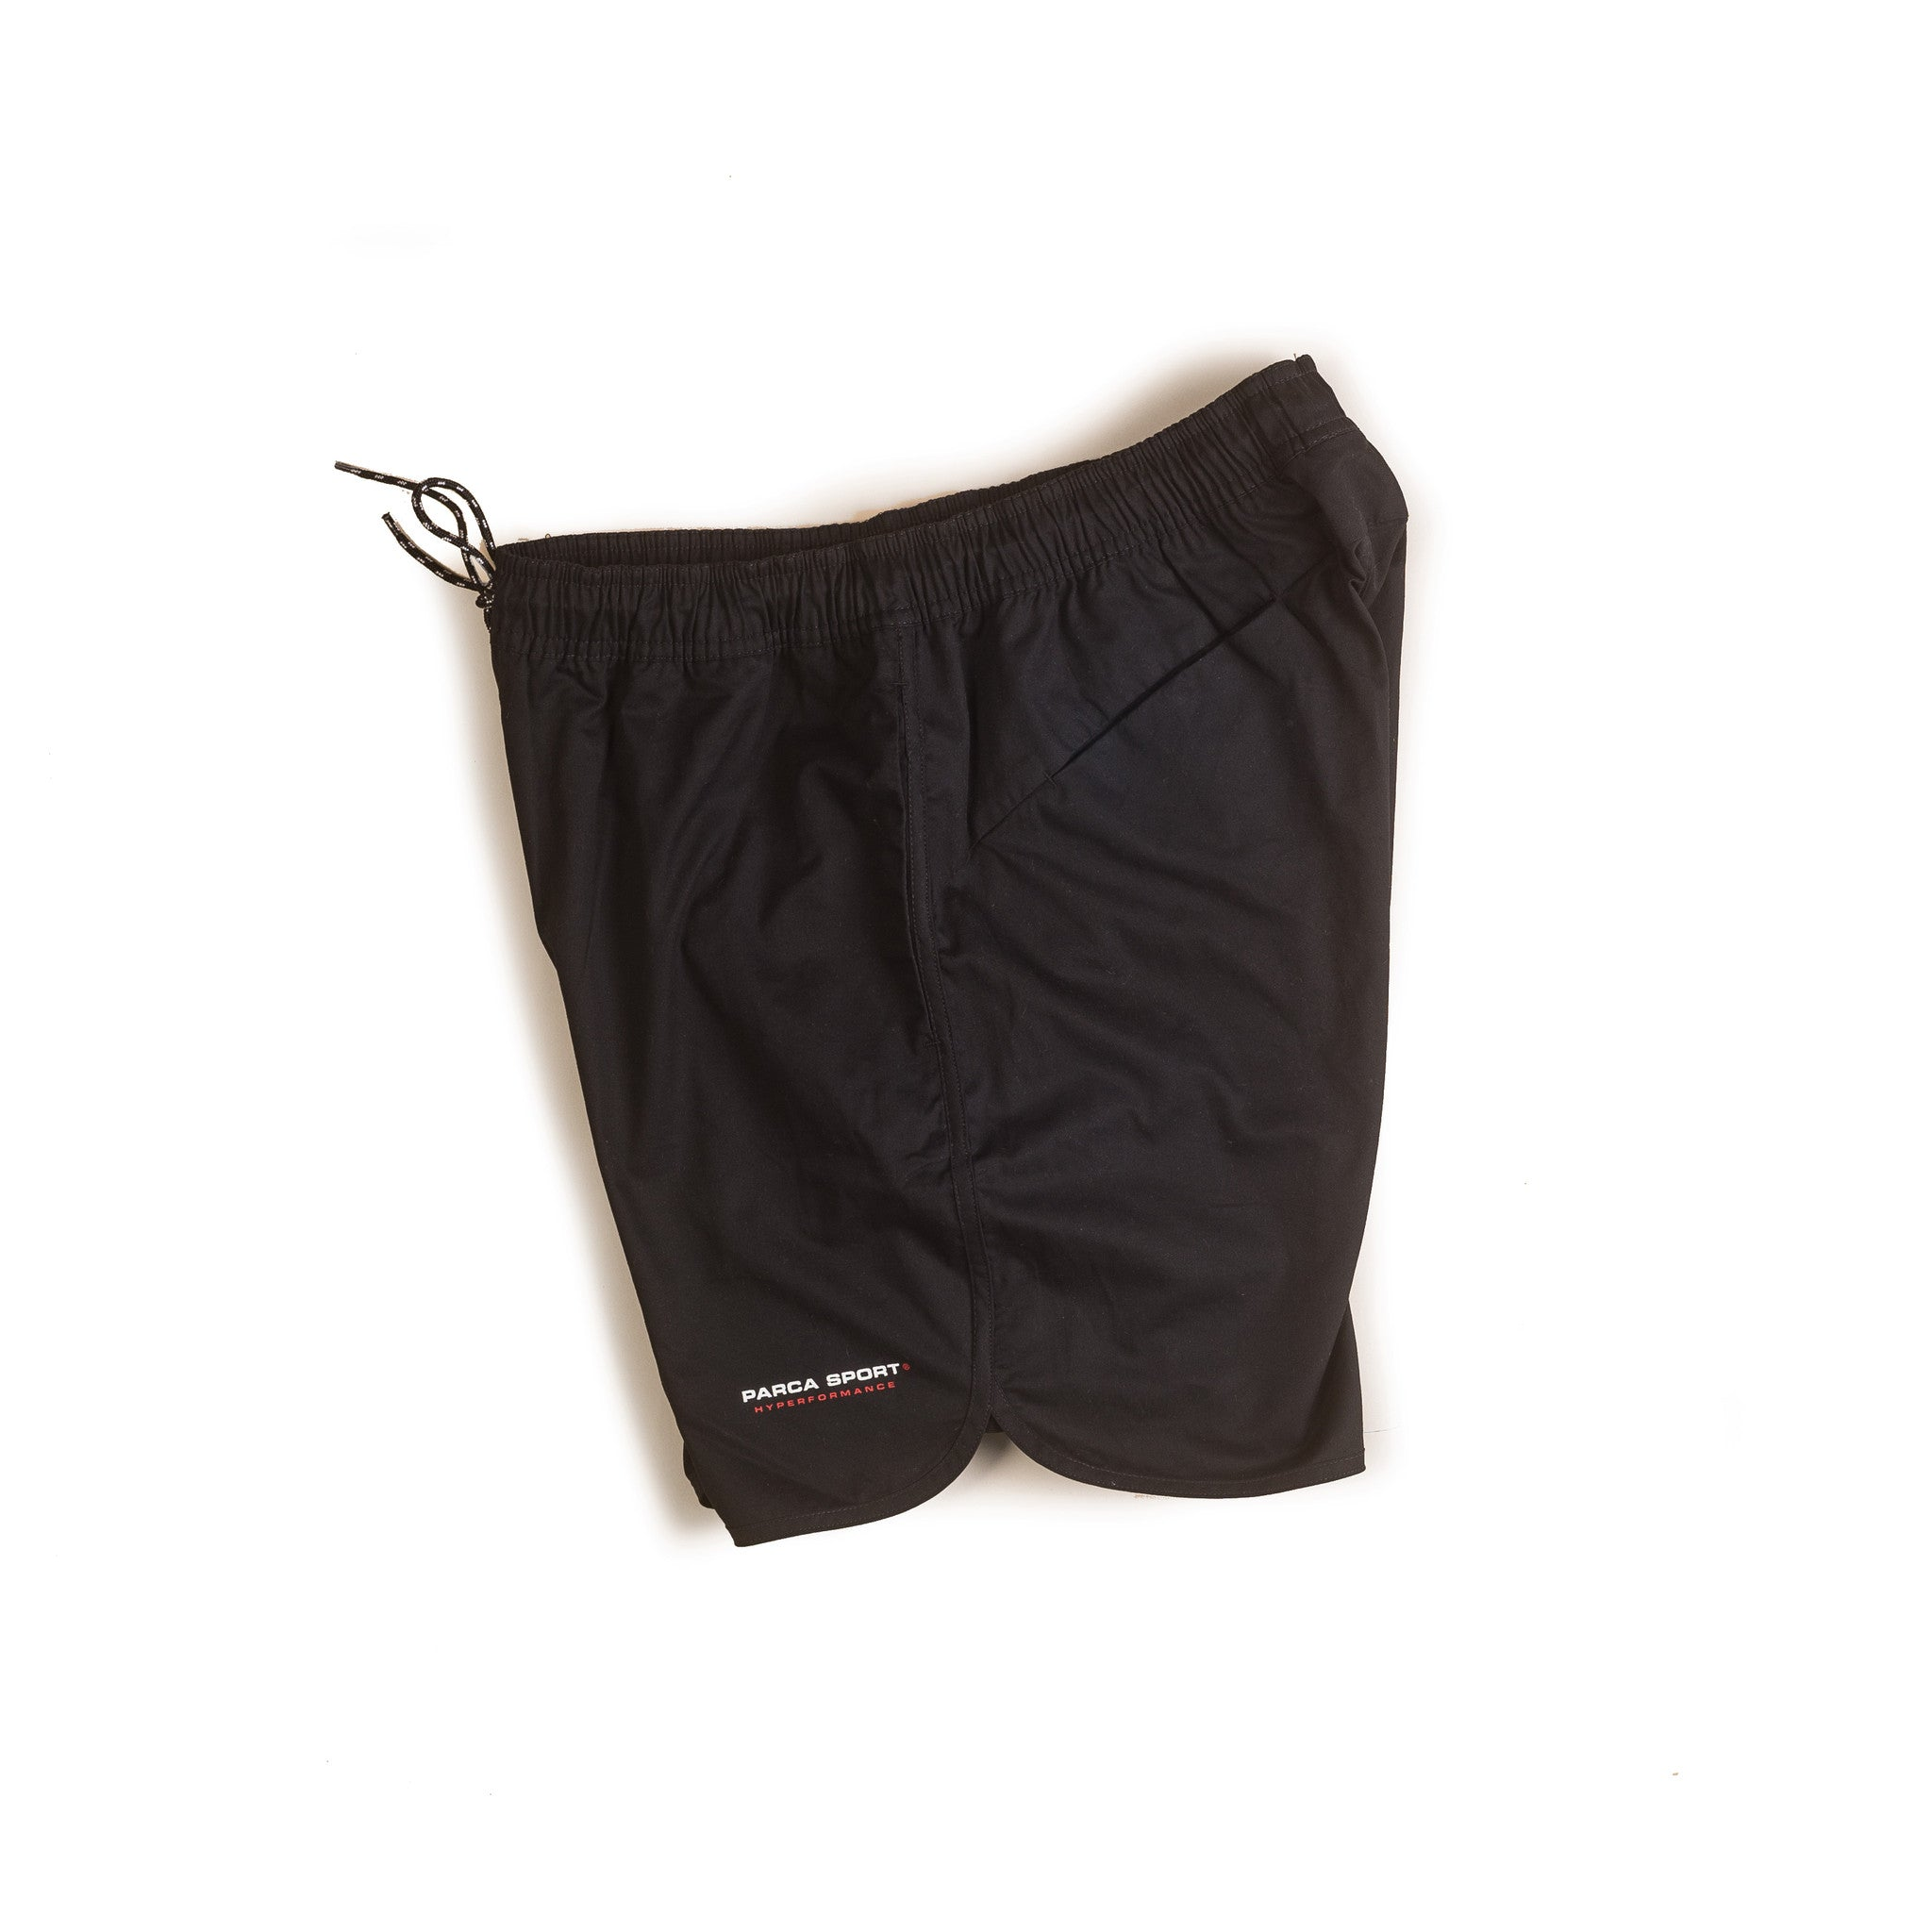 Notso - Polo Short - Black